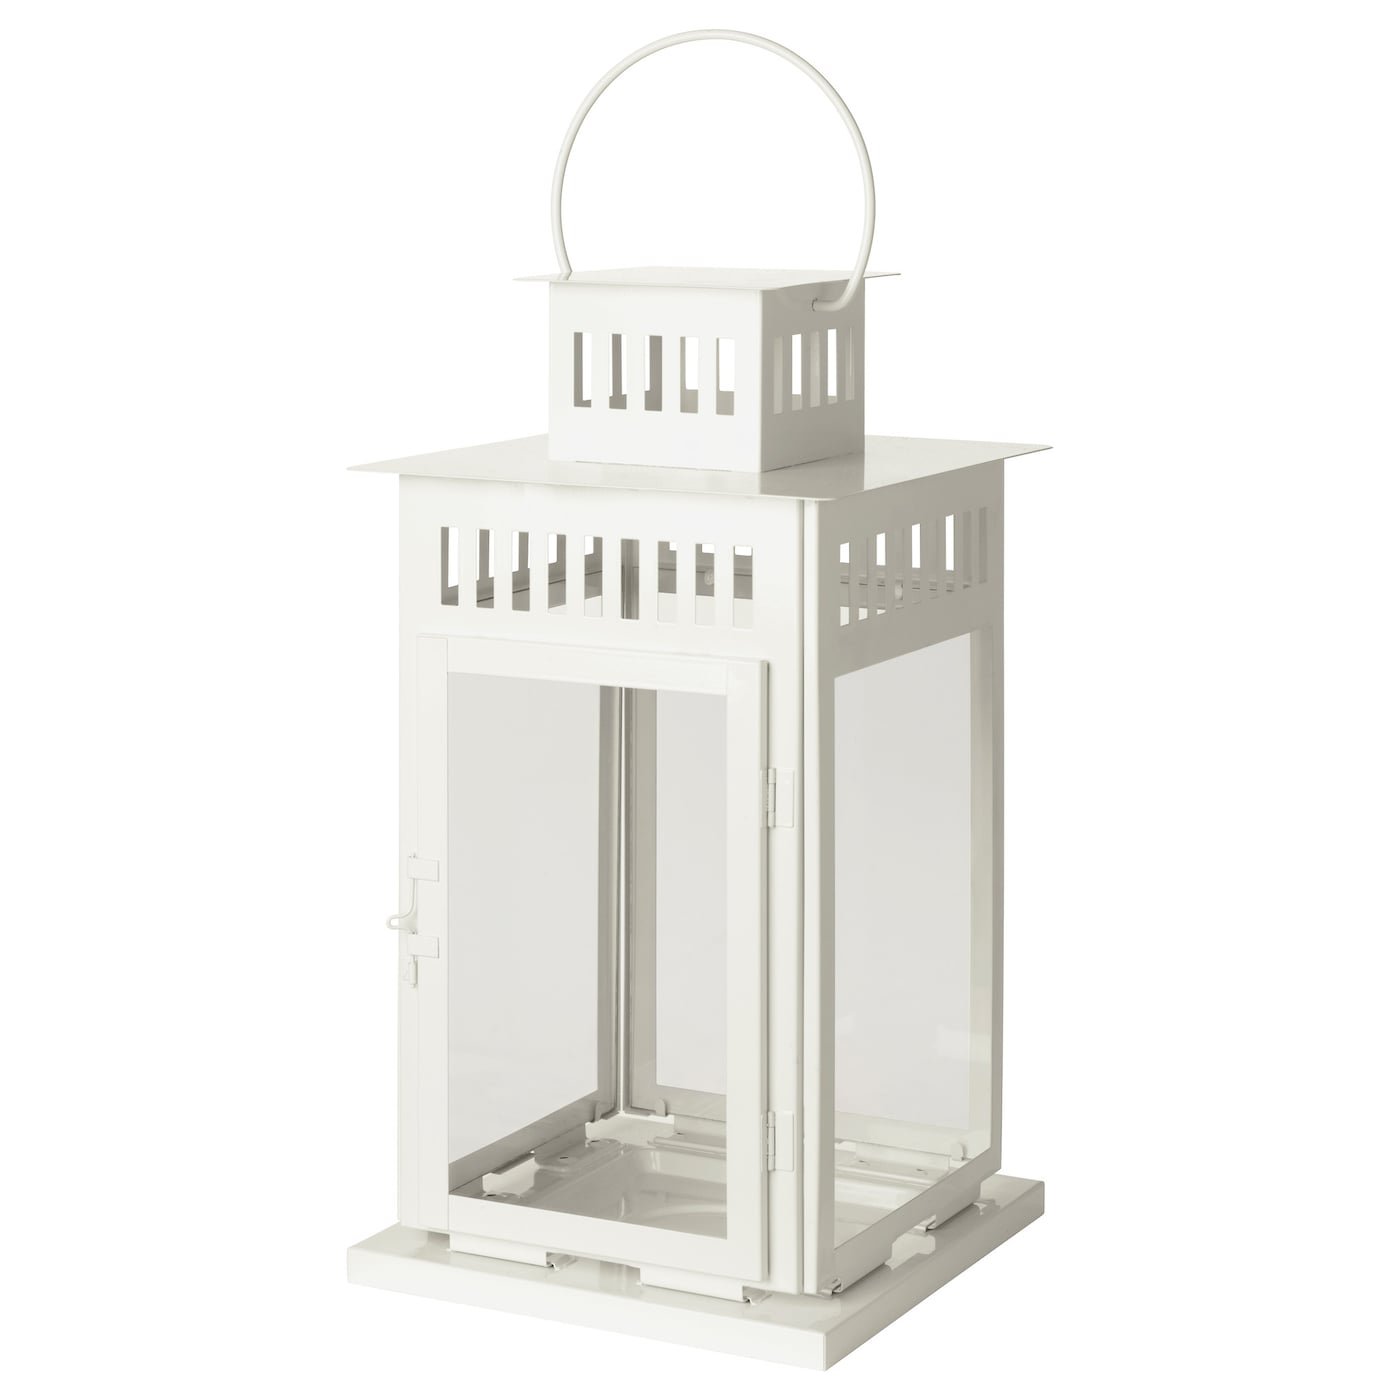 IKEA BORRBY lantern for block candle Suitable for both indoor and outdoor use.